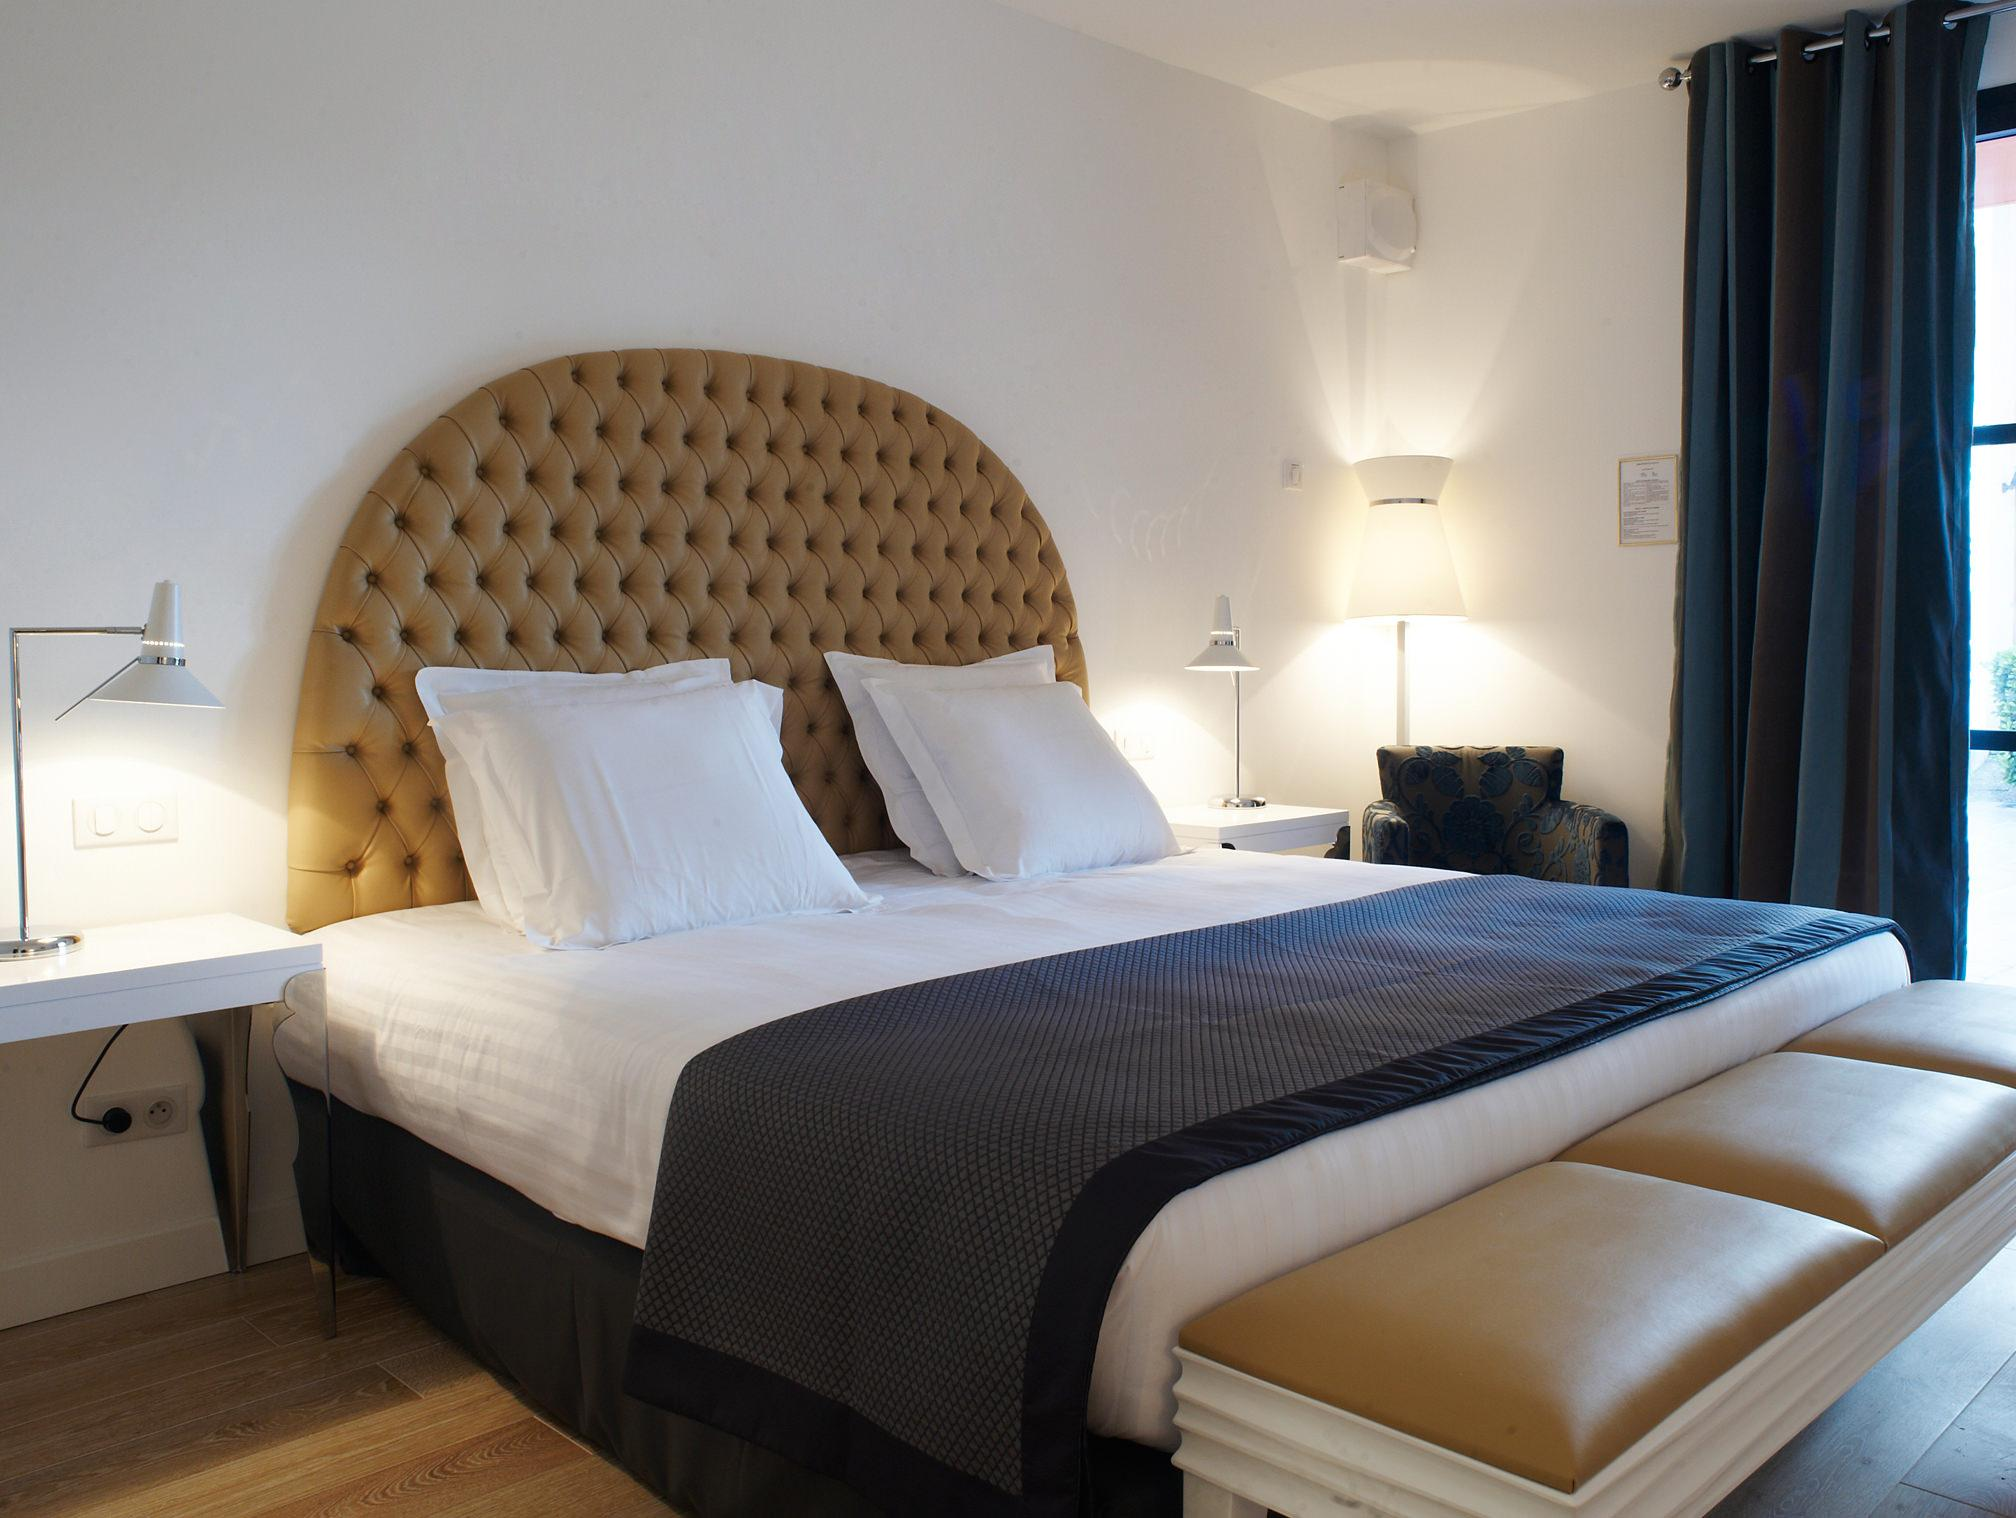 charming marseille hotel on social media new hotel bompard. Black Bedroom Furniture Sets. Home Design Ideas